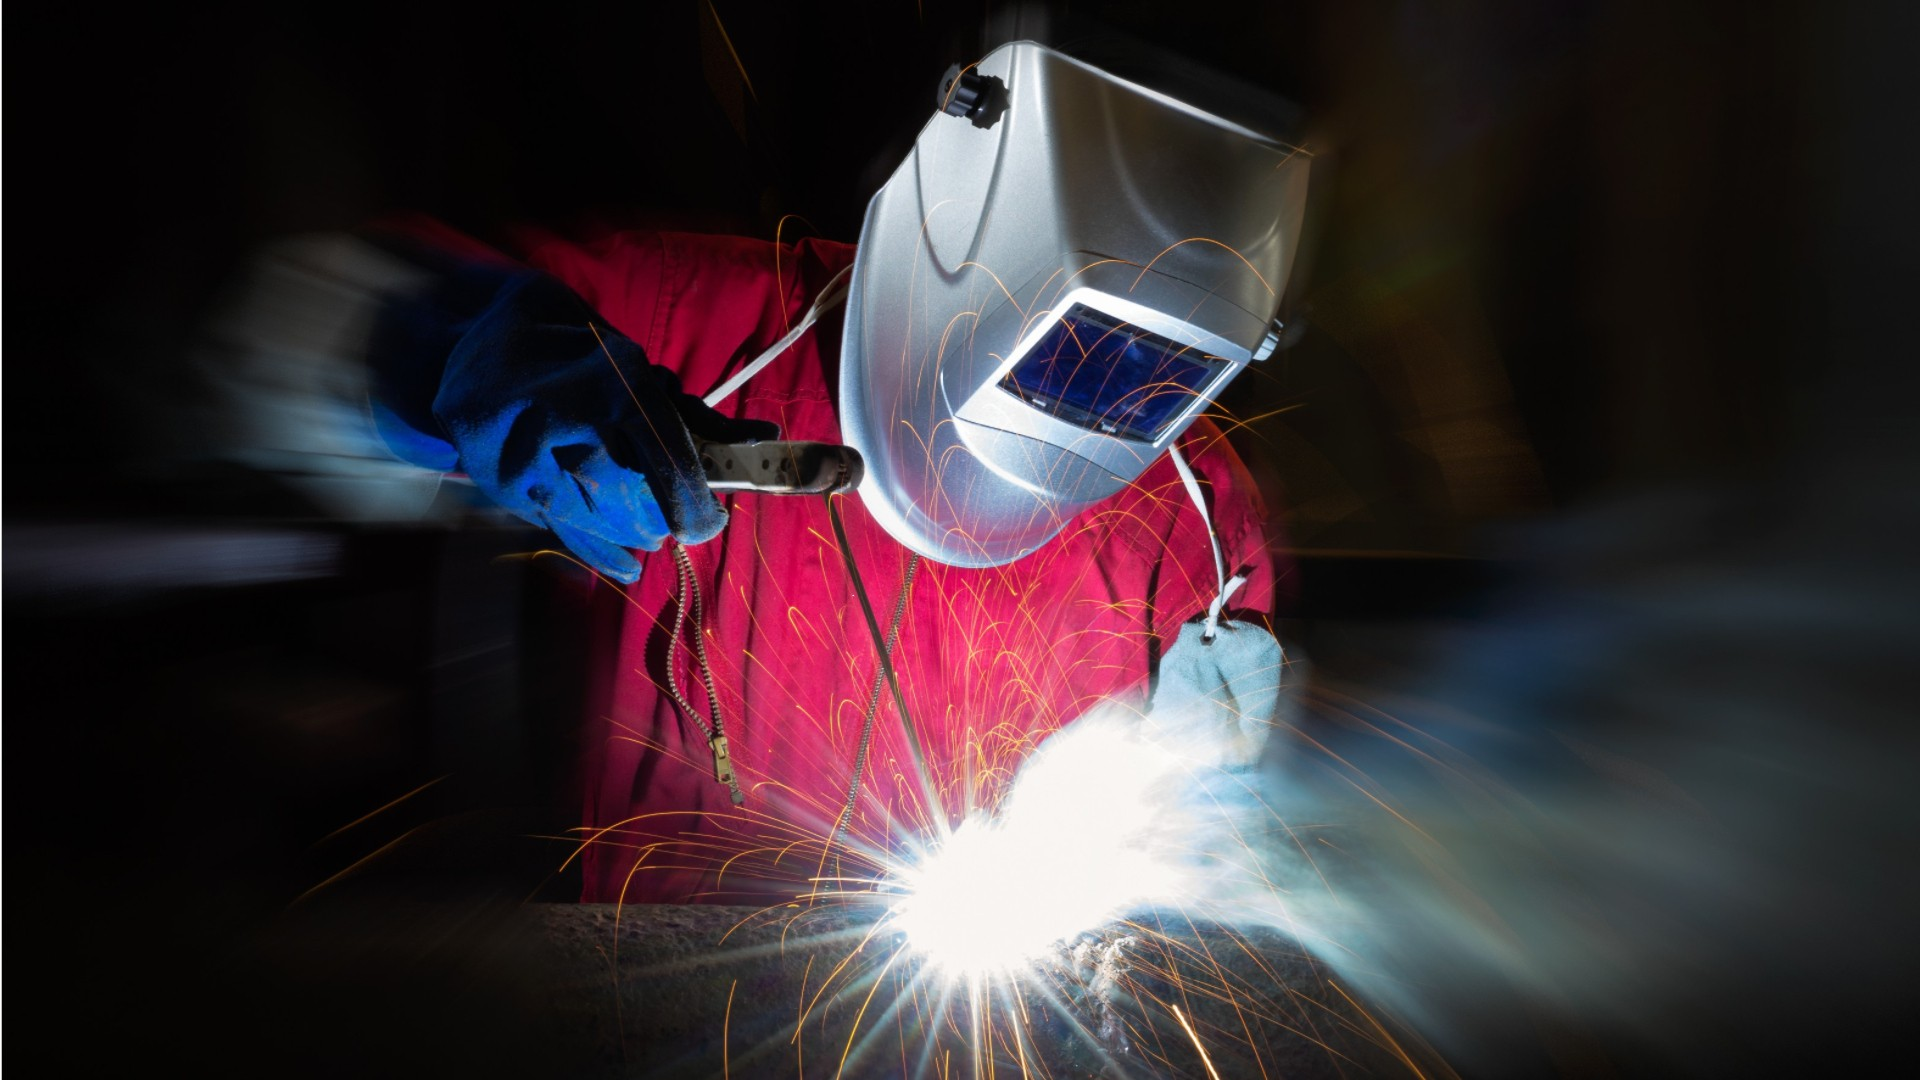 Job Outlook For Welders Welders Cutters Welder Fitters At My Next Move